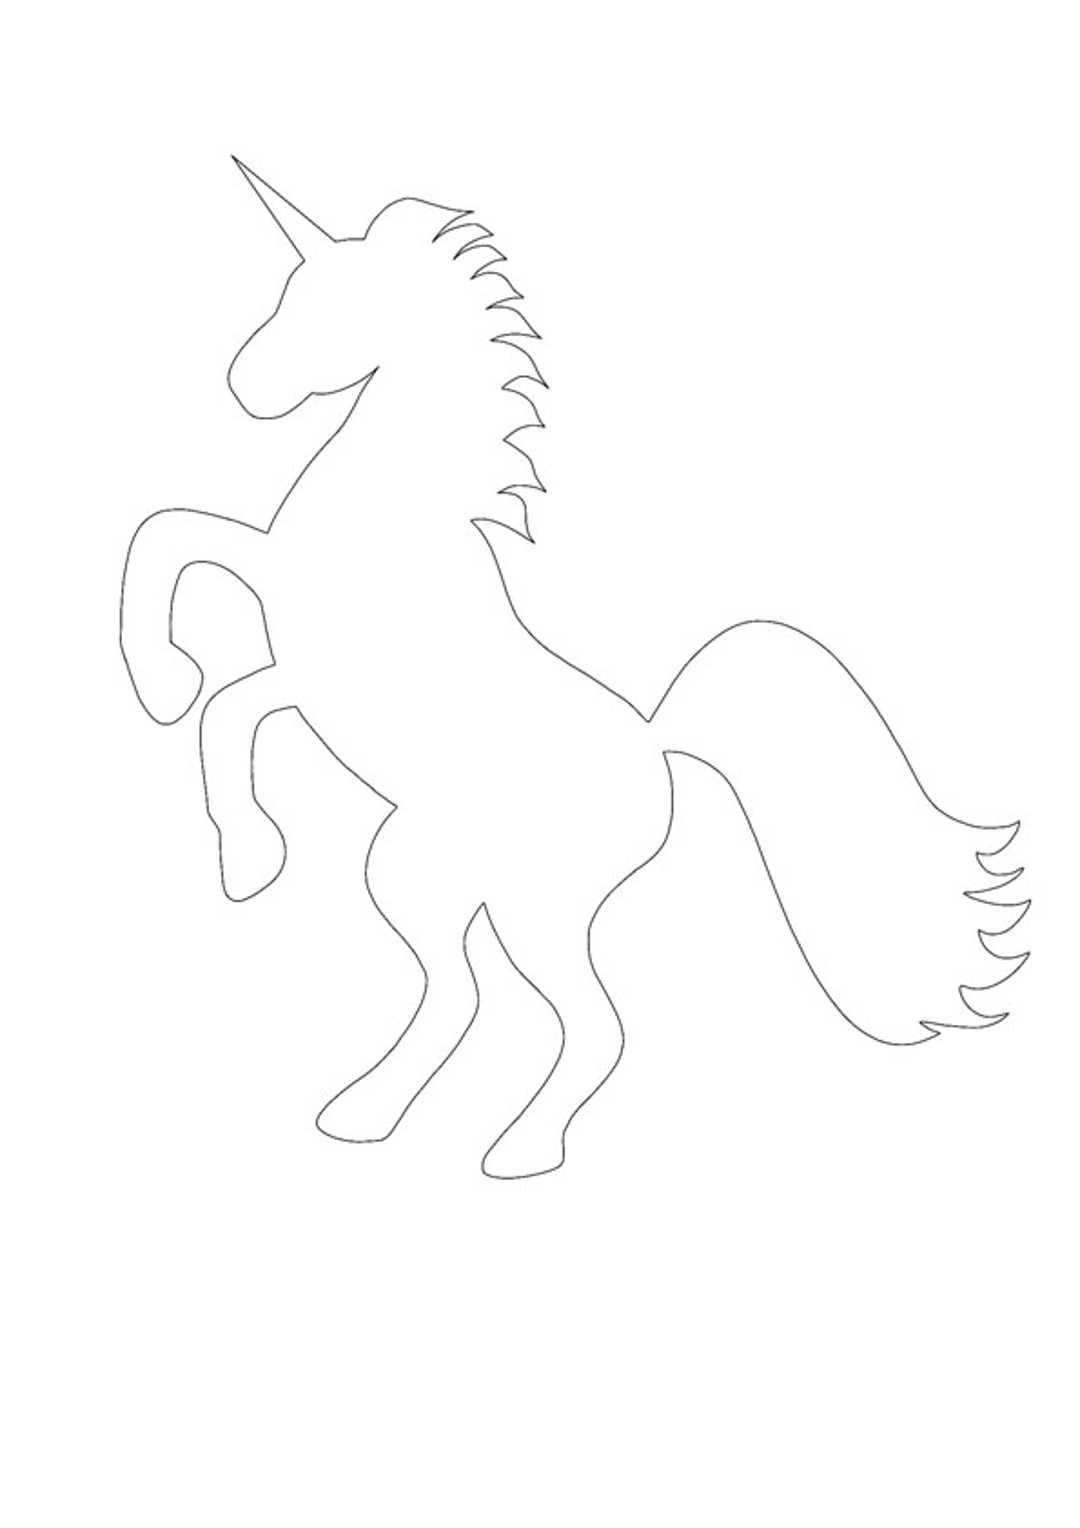 Unicorn Silhouette Coloring Pages Free Printable Coloring Free Printable Coloring Sheets Unicorn Coloring Pages